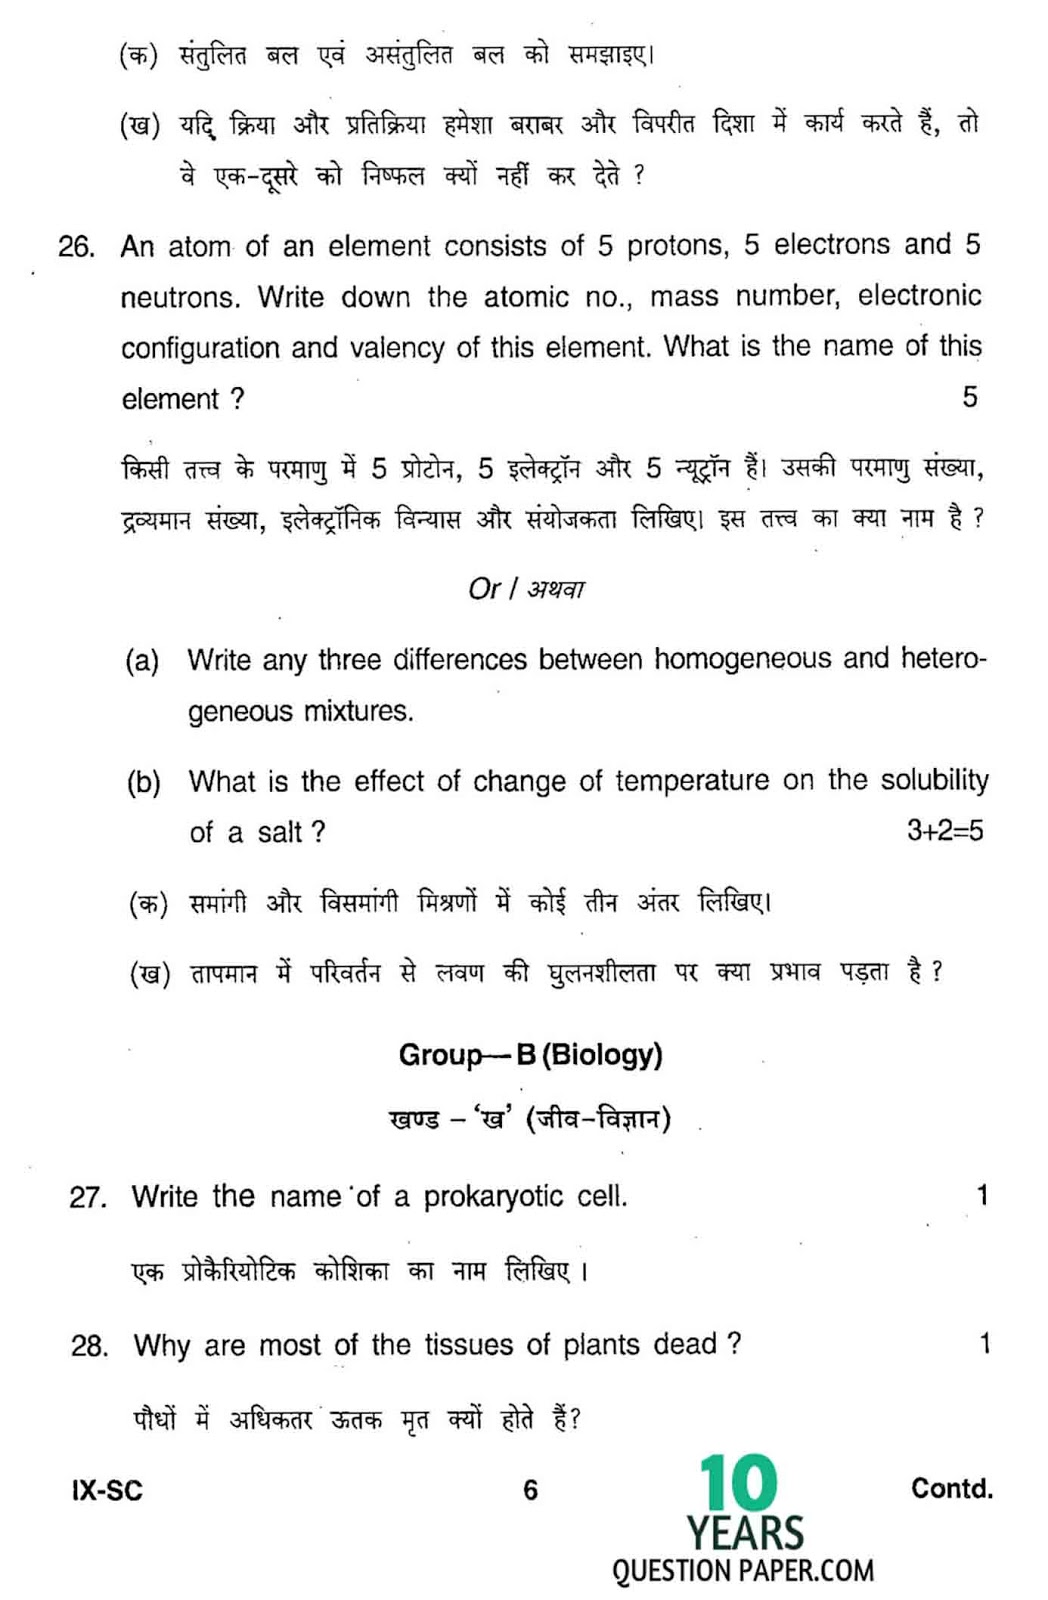 JAC class 10th 2017 Science question paper